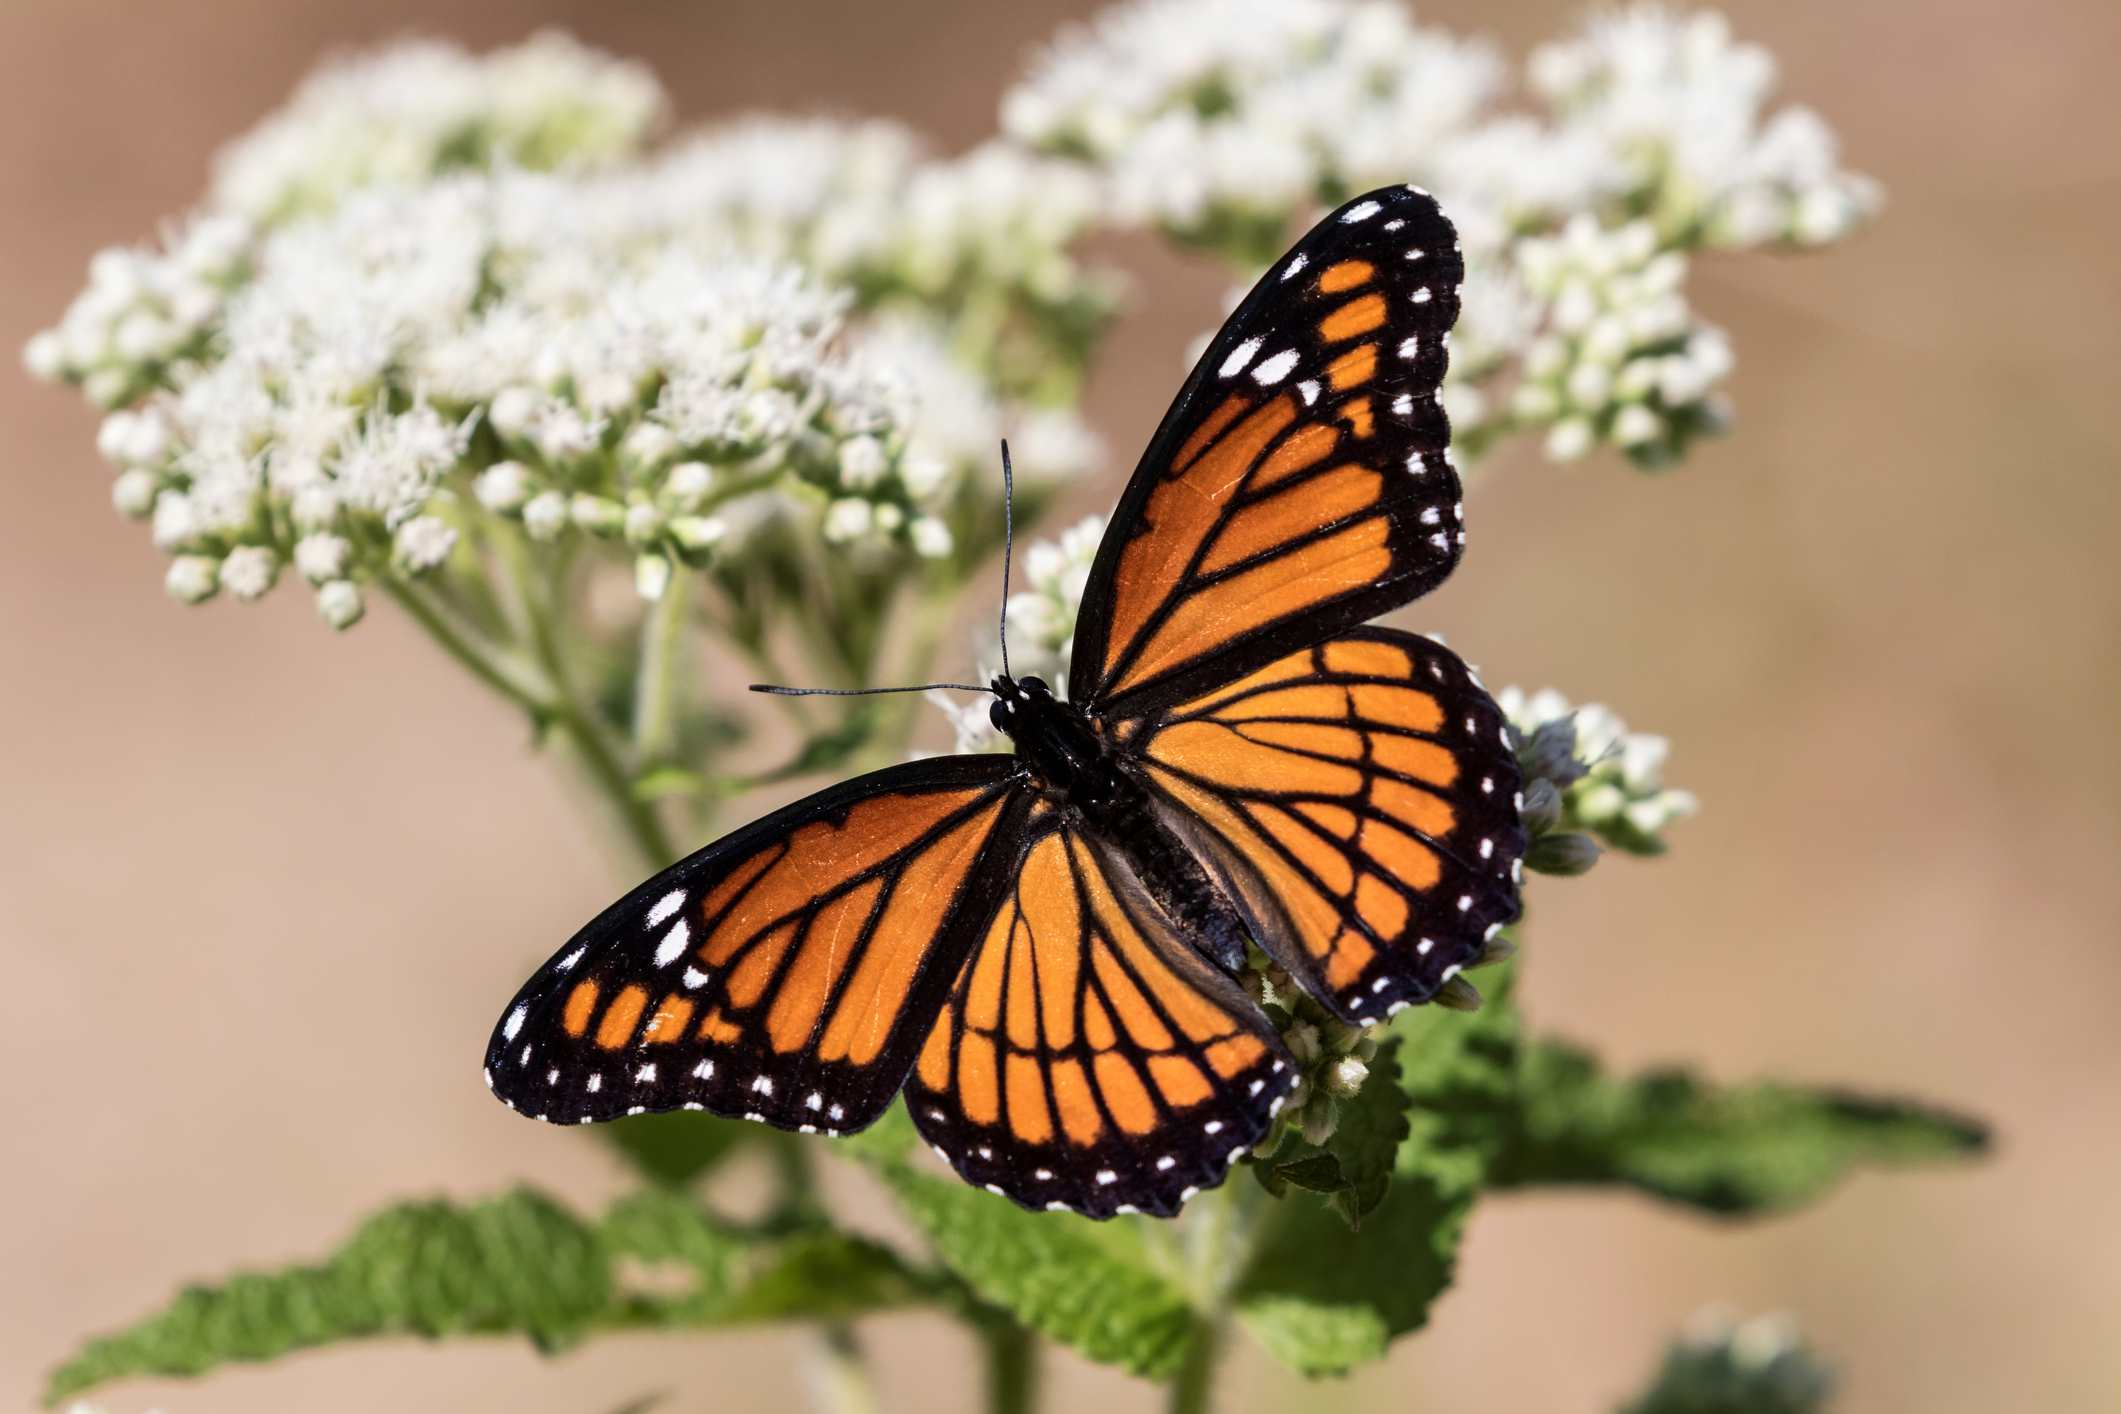 A Viceroy butterfly pauses on a wildflower, spreading its wings.